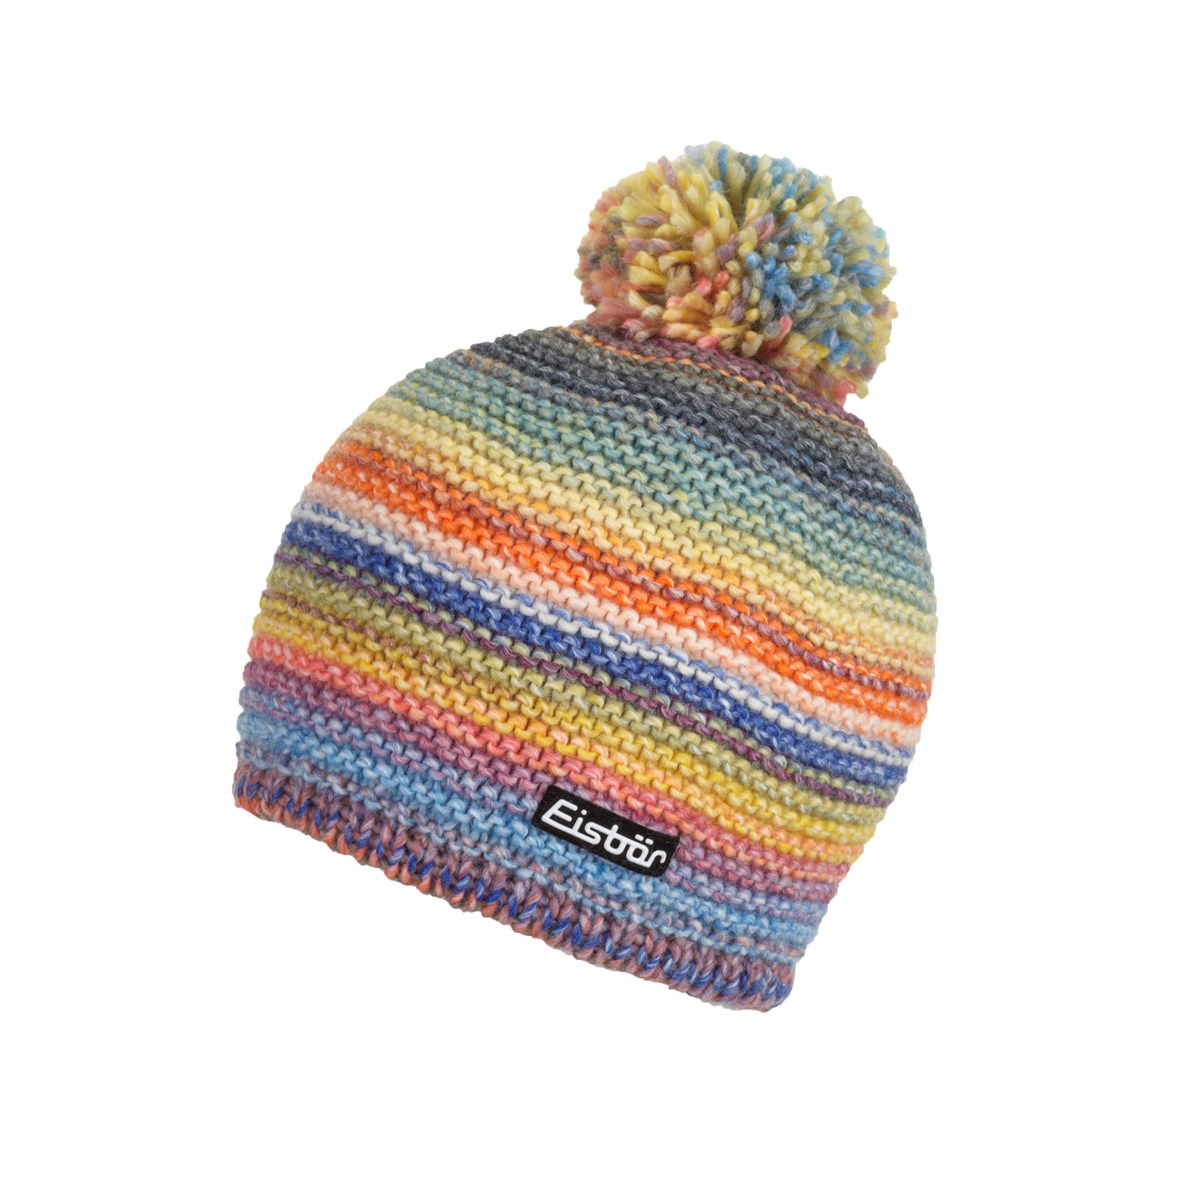 226f4fe13f0 Eisbar Kunita Ladies Pompom Hat Blue   Multi. 0 (Be the first to add a  review!)